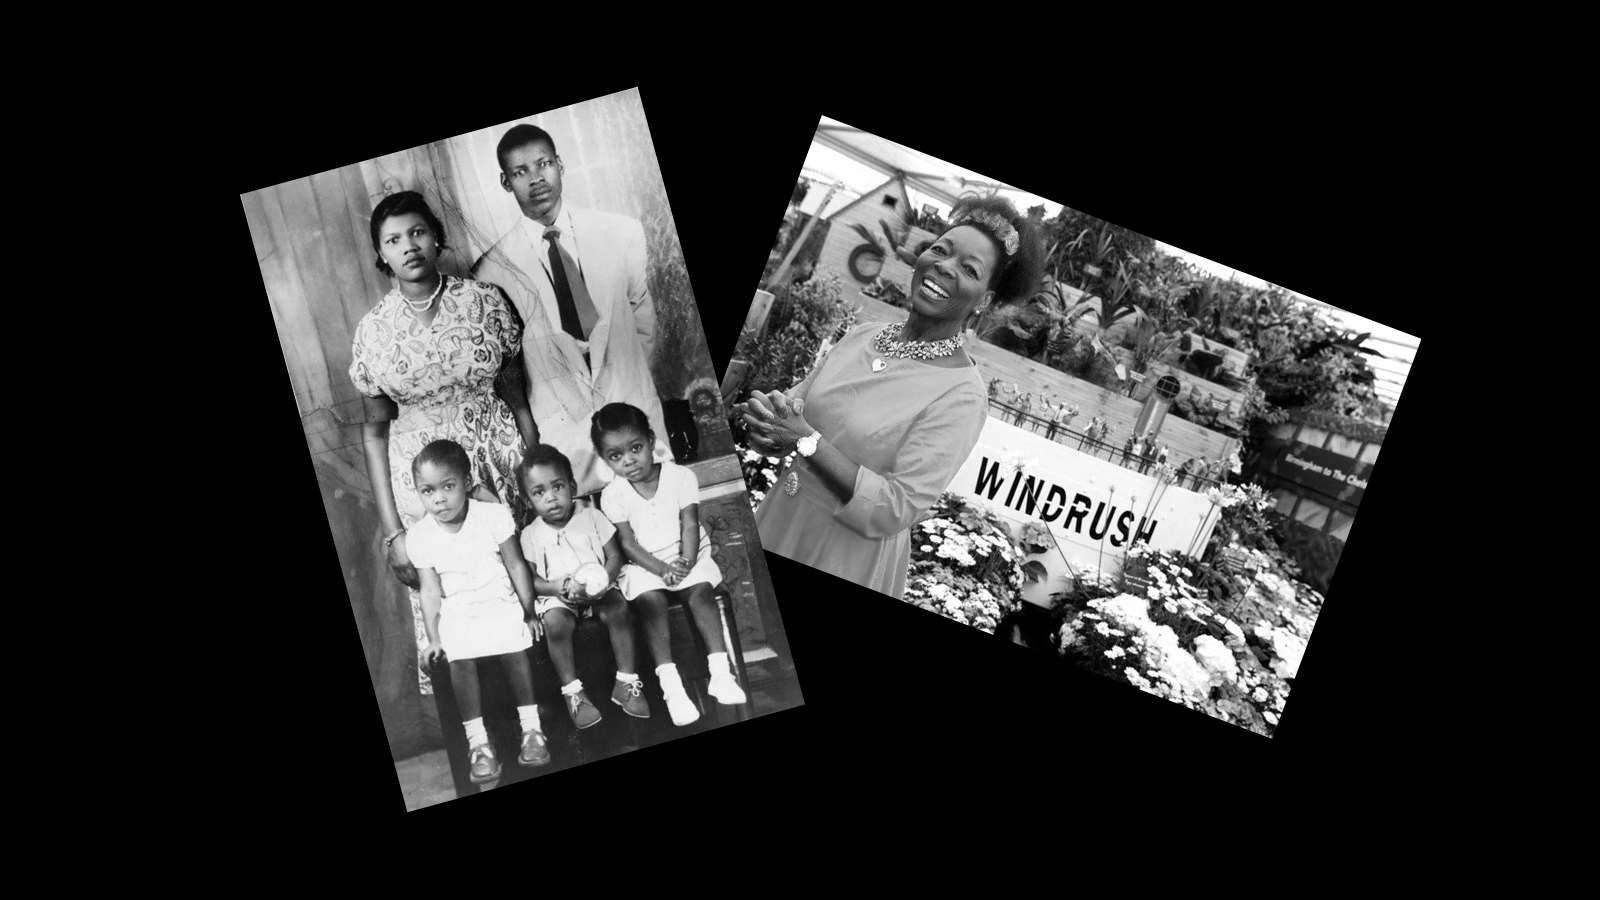 Photographs of Floella Benjamin as a child with her family and Floella with her Windrush garden